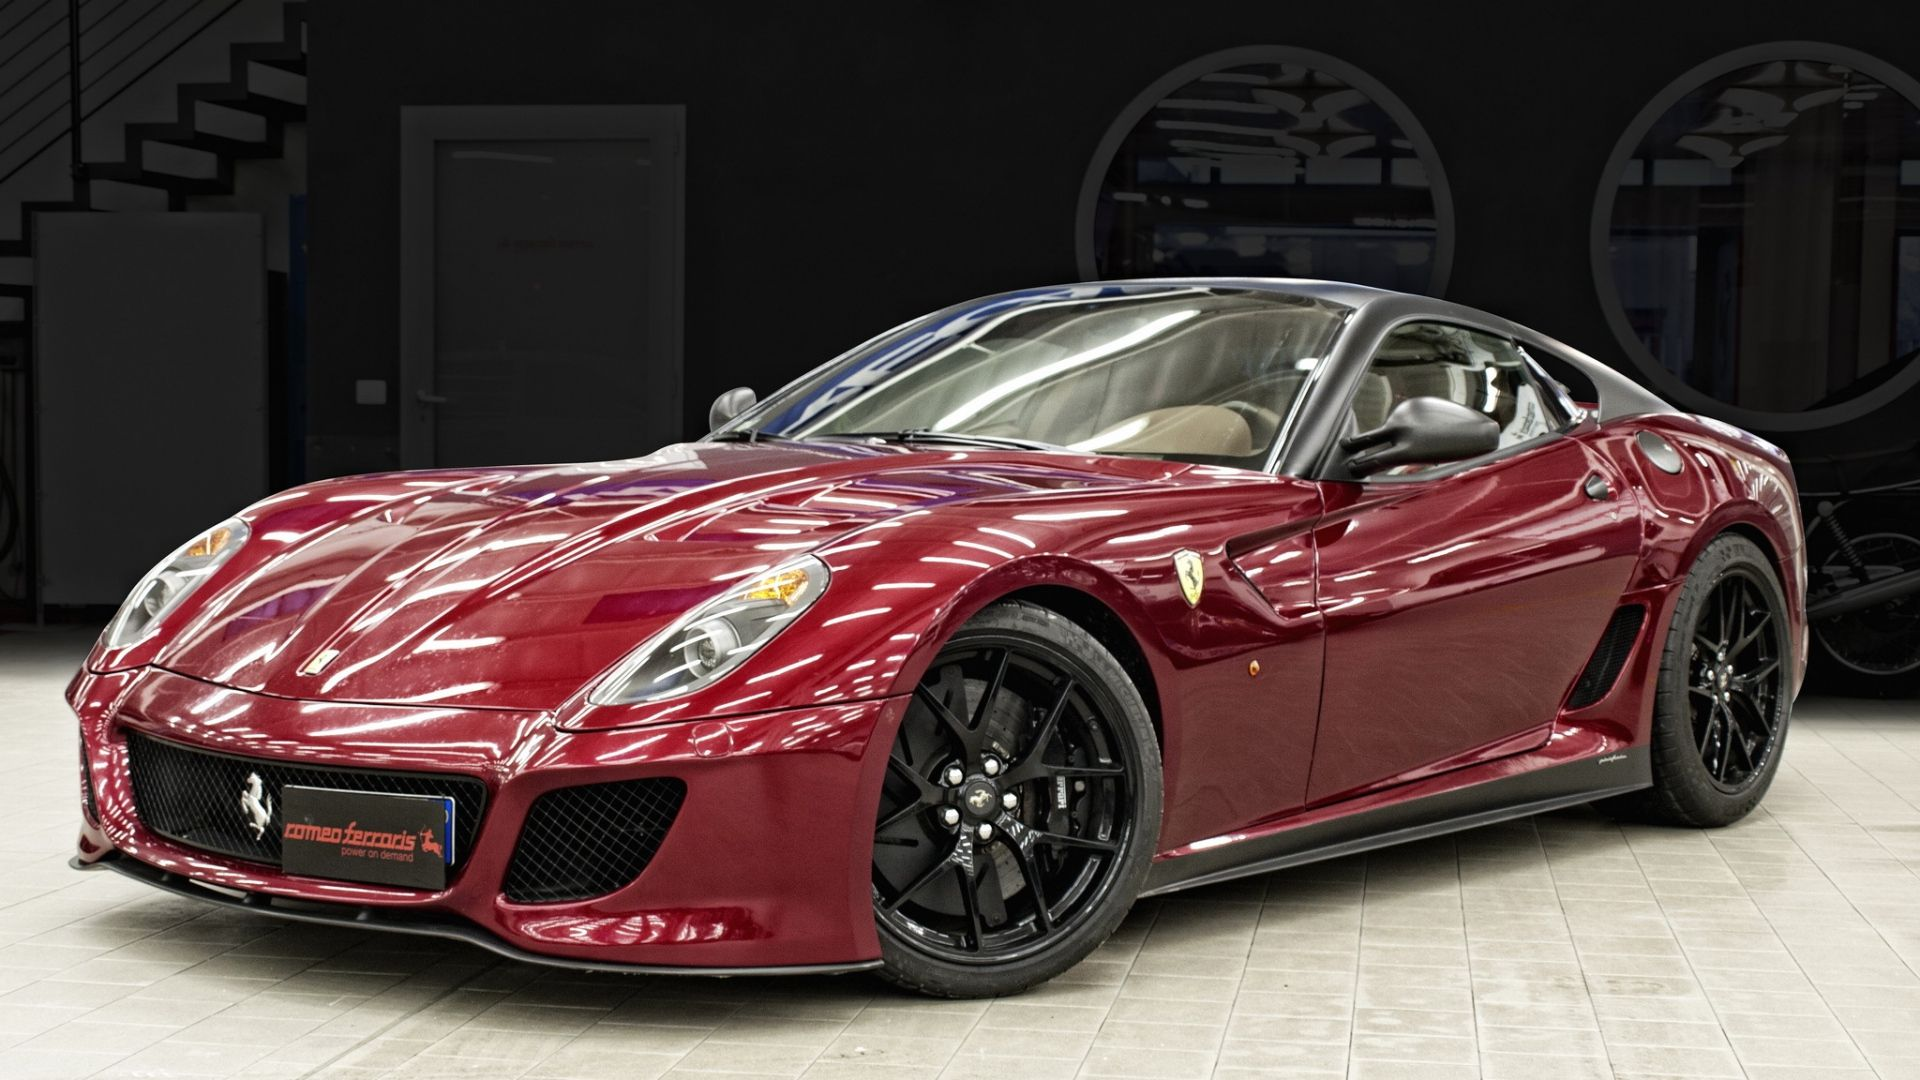 Image for ssc ultimate aero tt hd wallpaper ssc0007 sports cars pinterest cars sports cars and super car